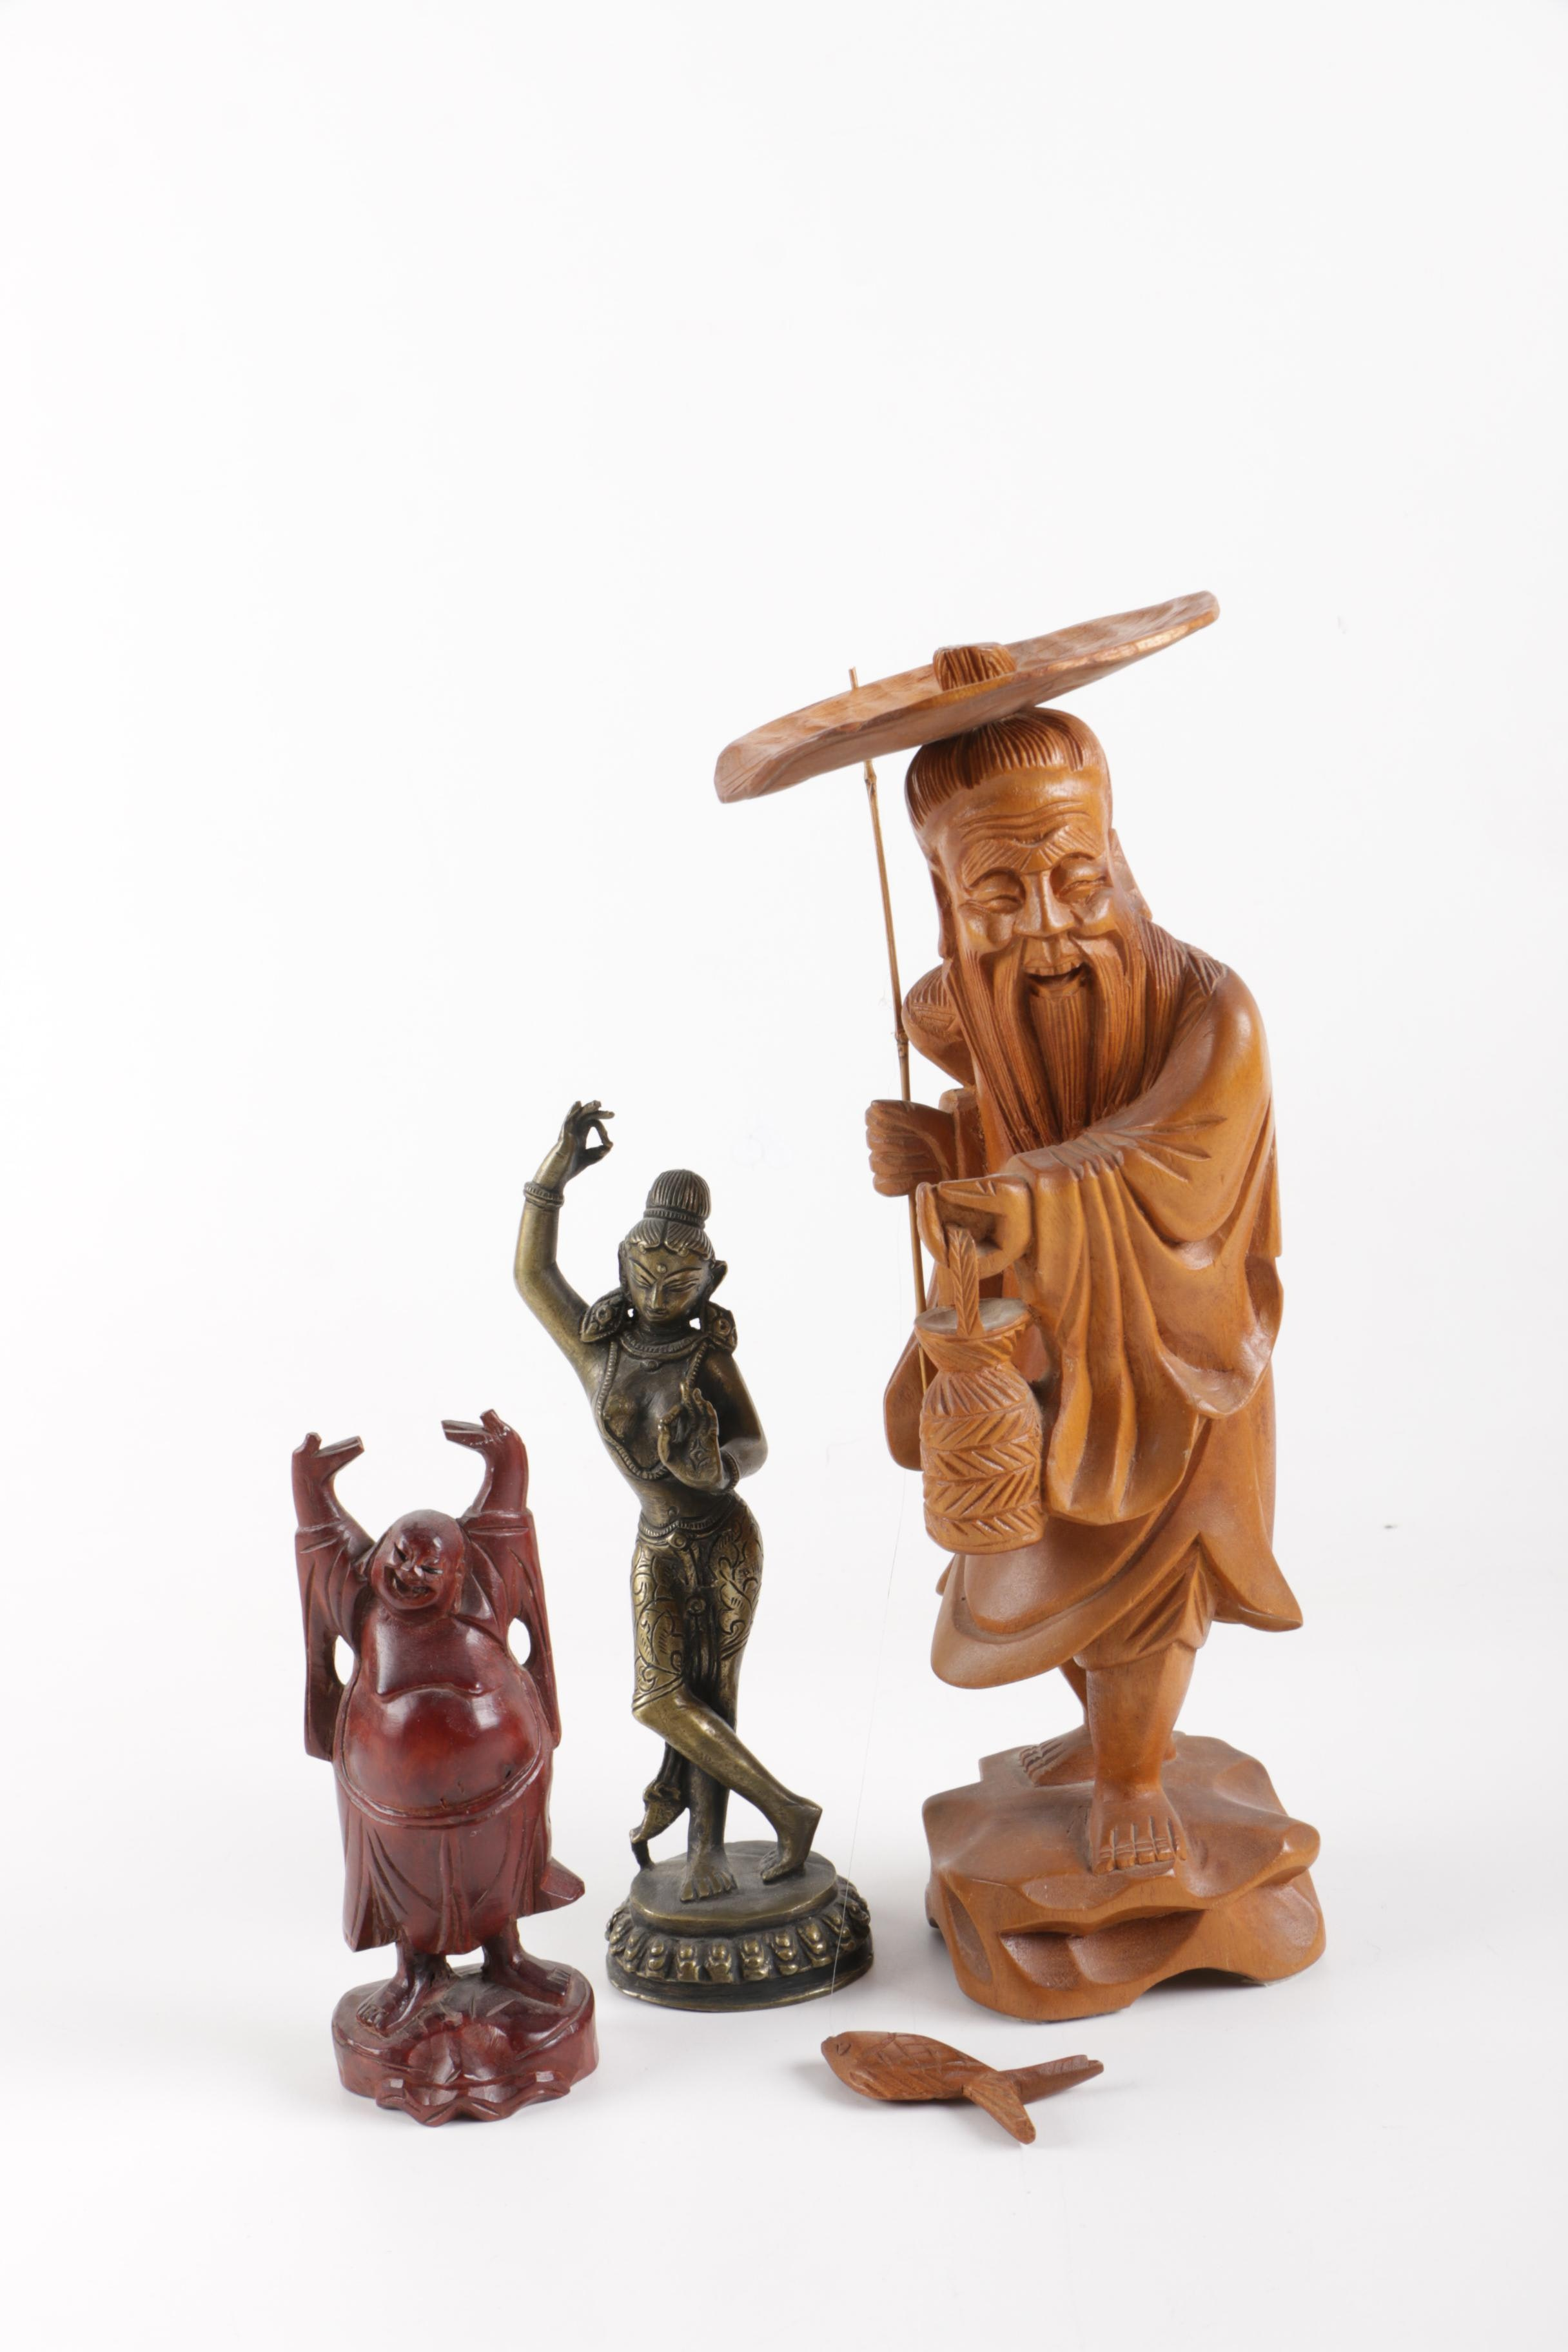 Collection of Wooden and Brass South Asian Figurines